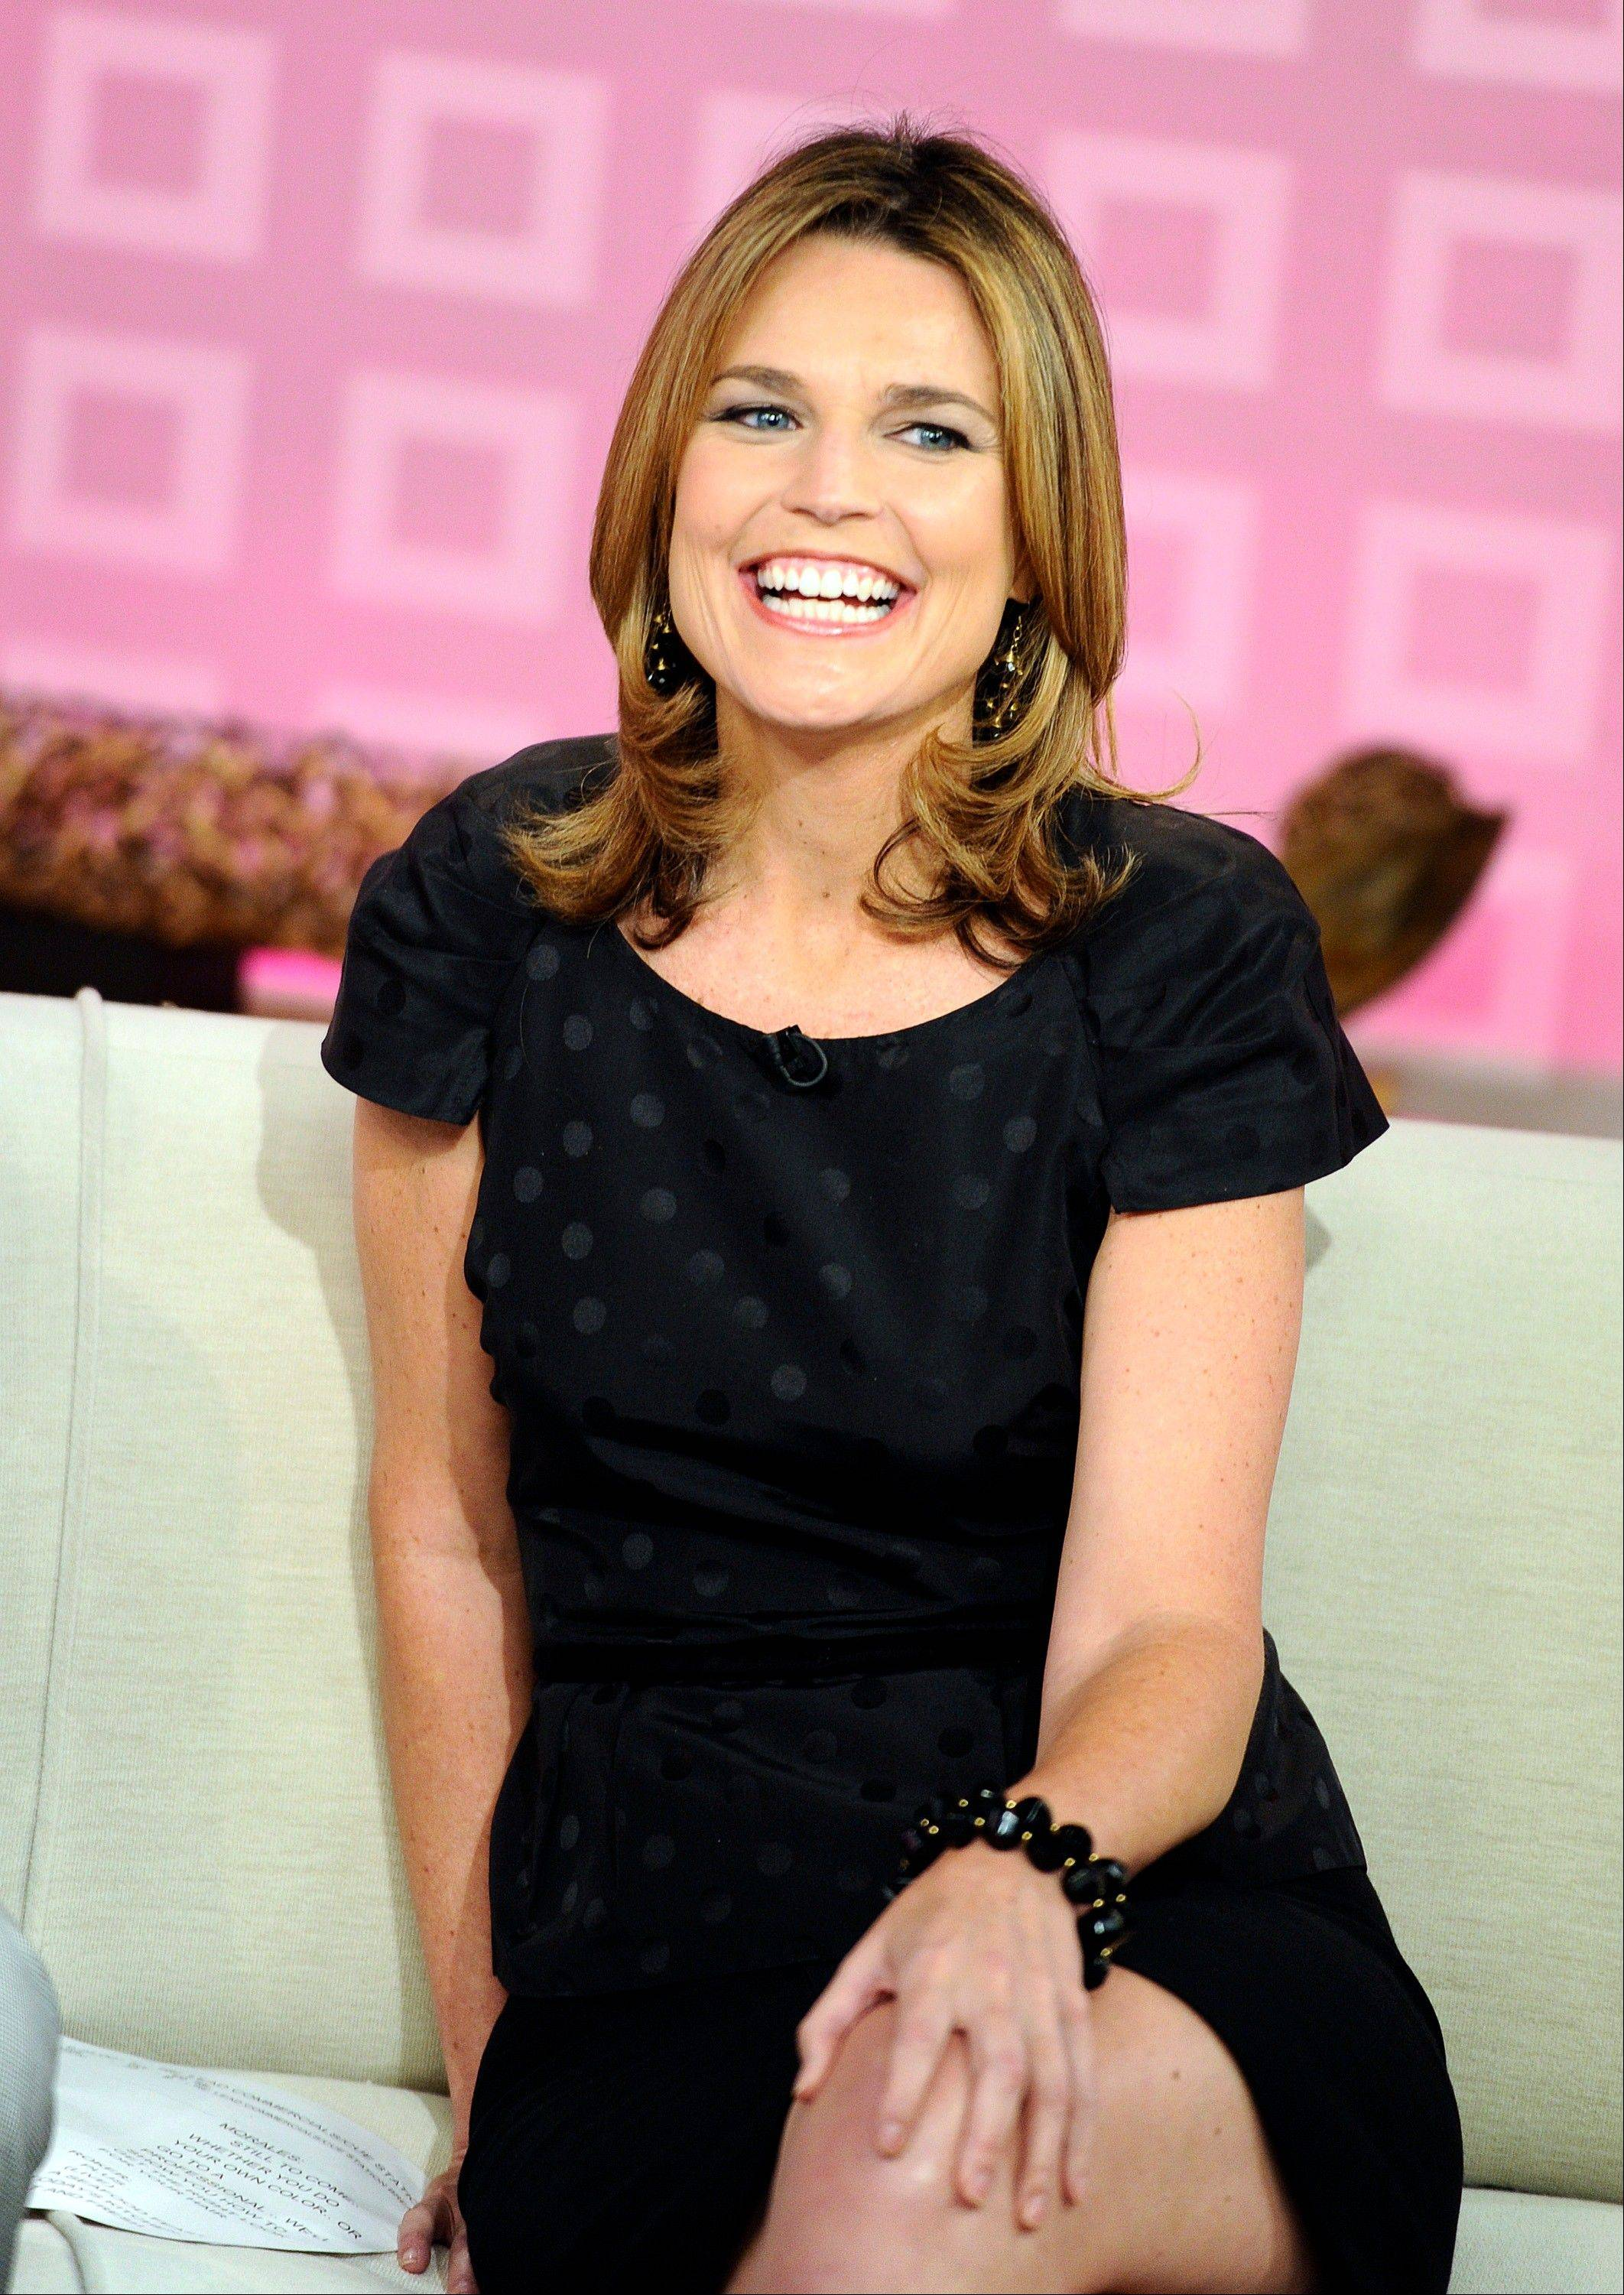 Savannah Guthrie started Monday in her new role as co-host of NBC�s �Today� show.